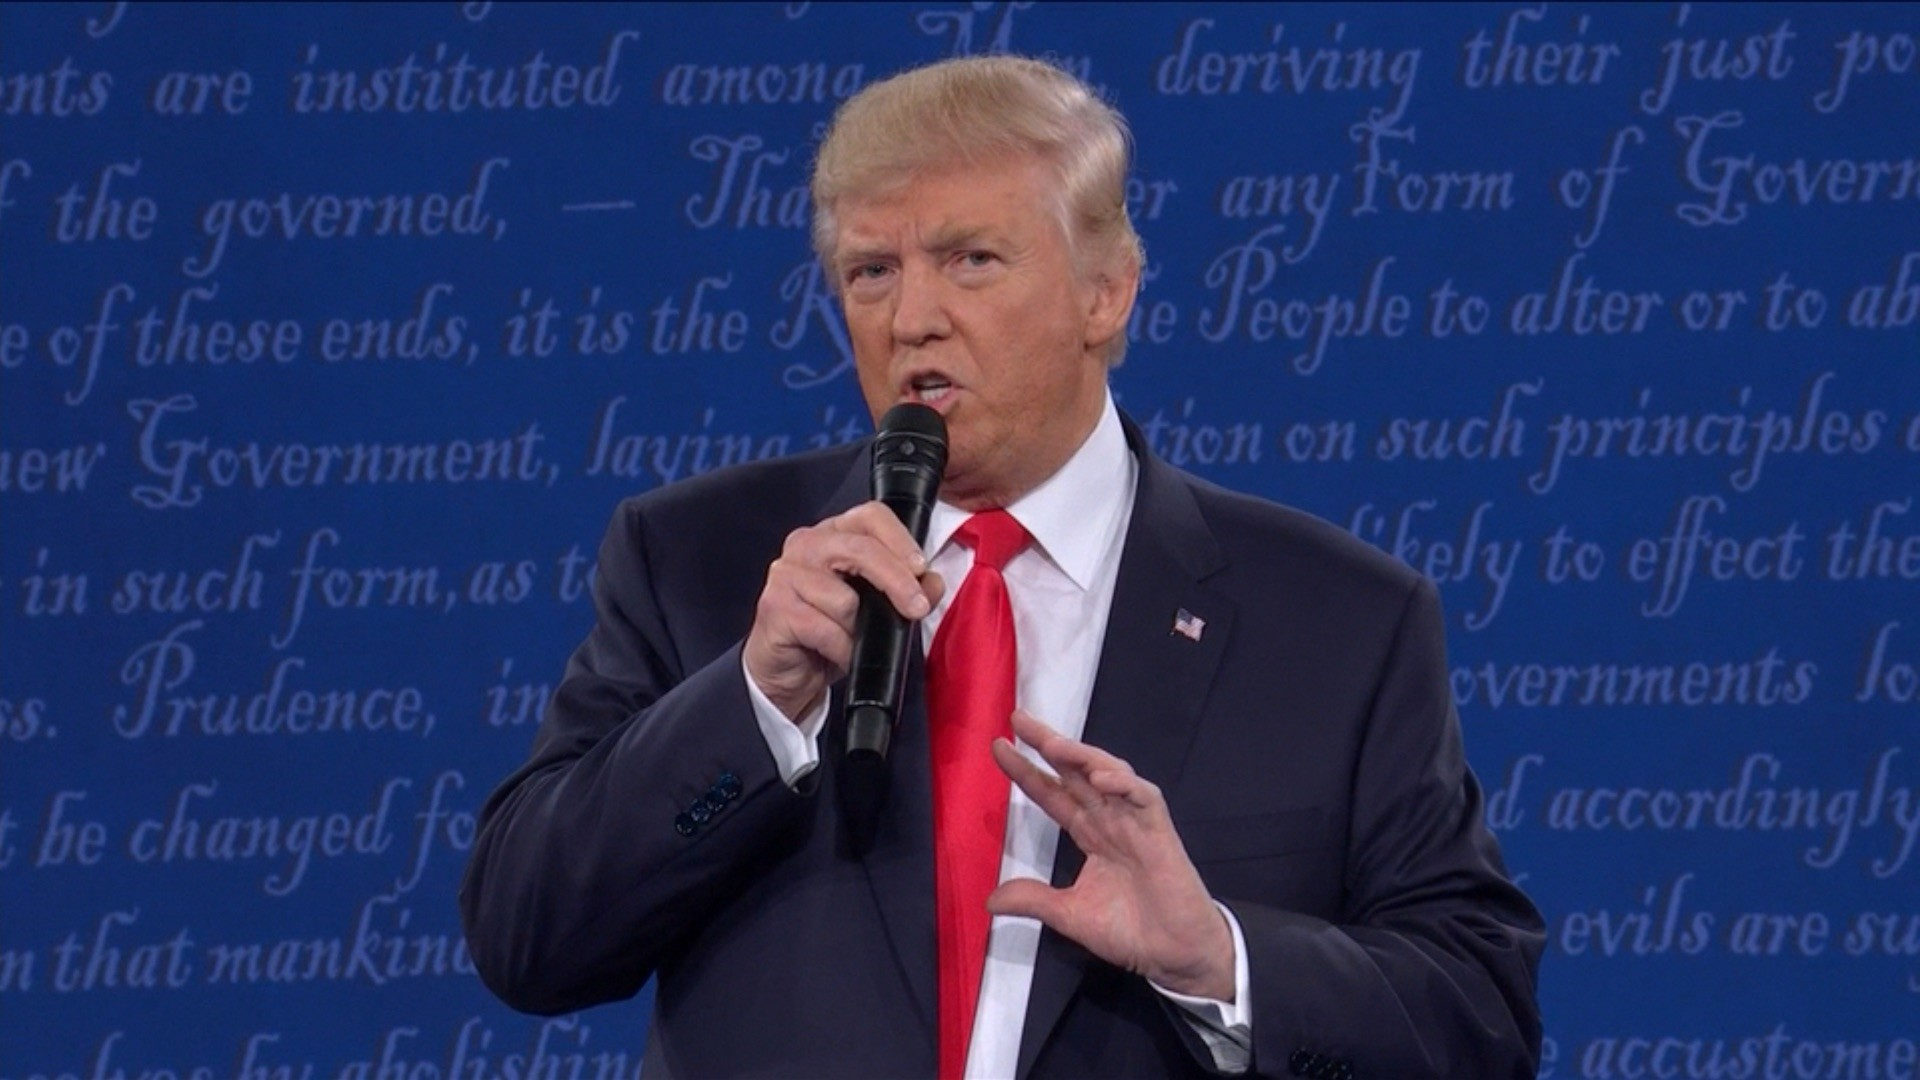 At second debate, Donald Trump accuses Bill Clinton of abusing women – The  Washington Post